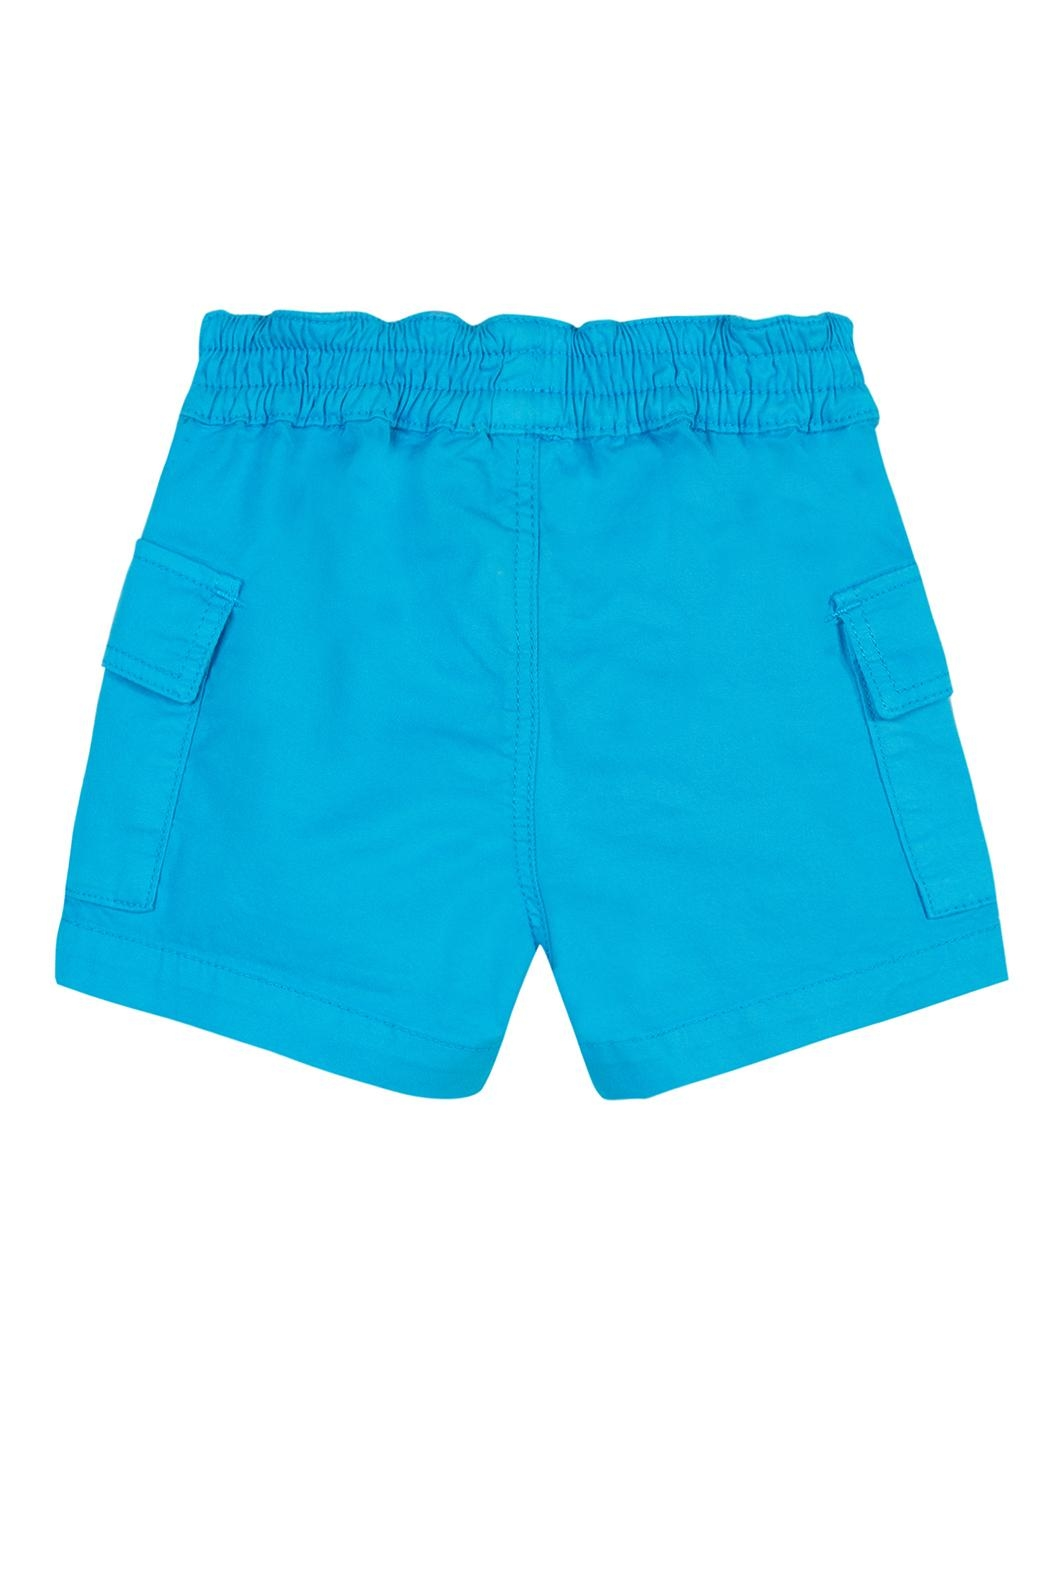 Paul Smith Junior Blue-Danube 'Toby' Shorts - Front Full Image